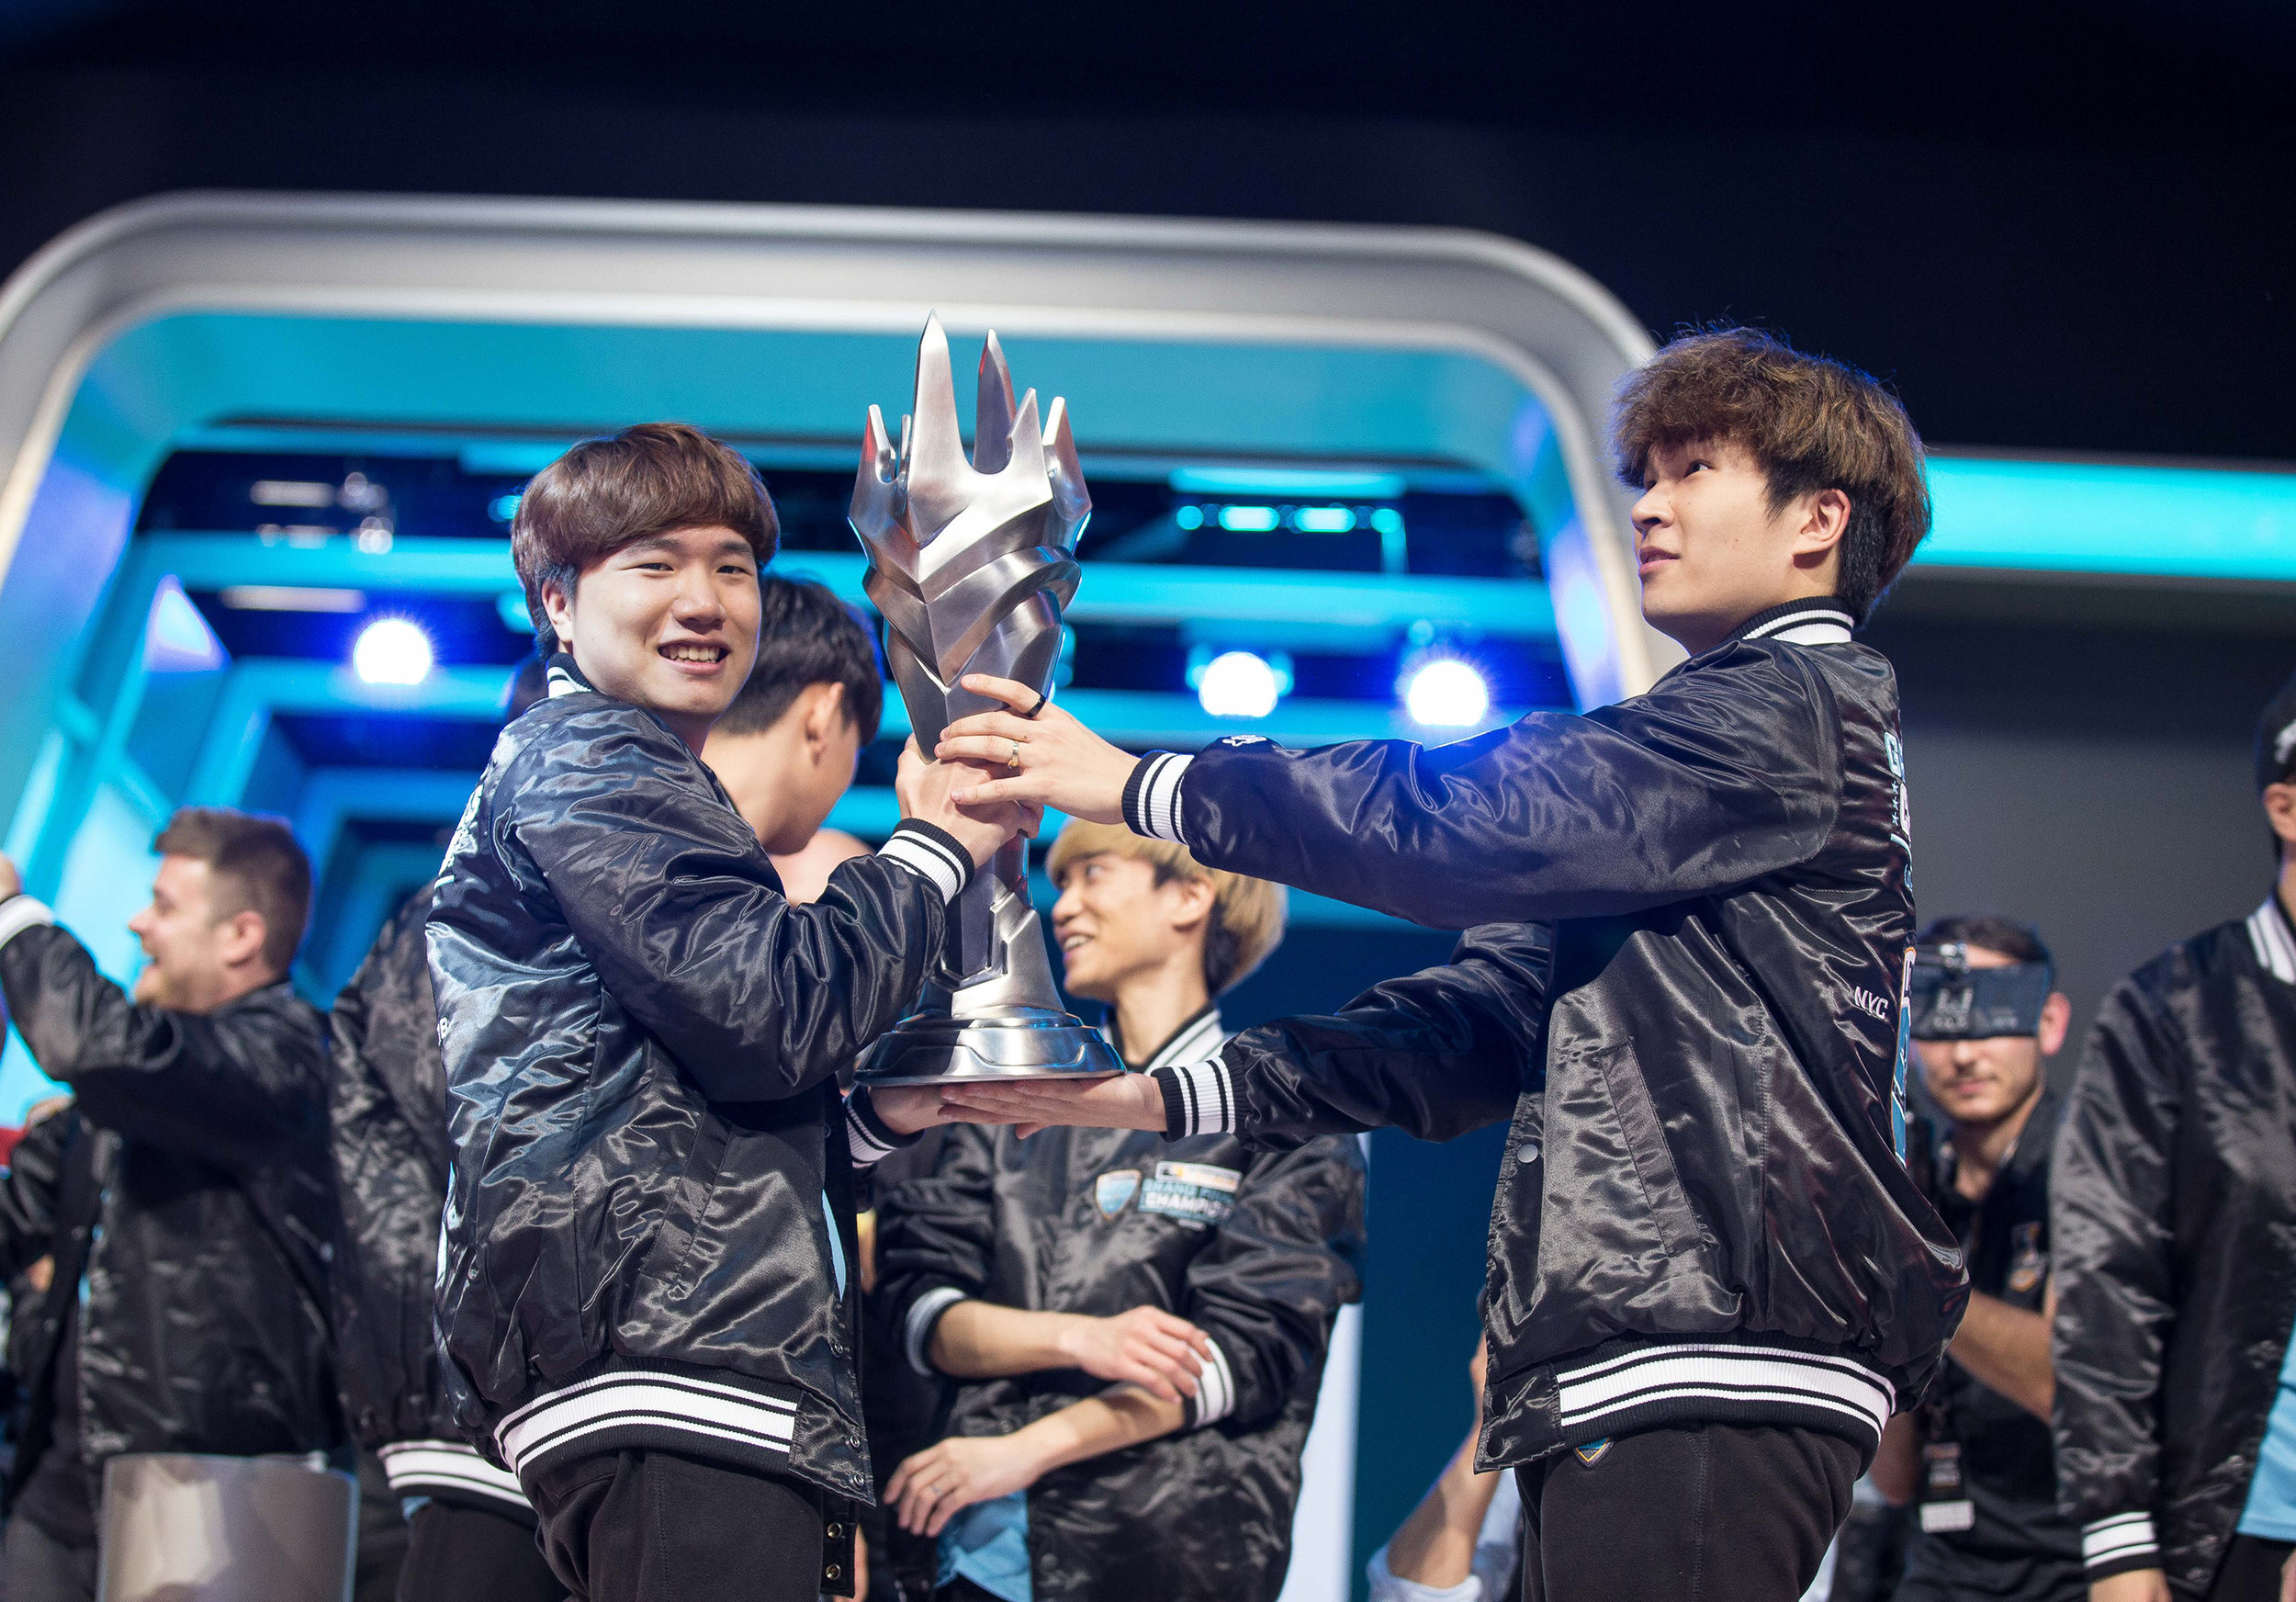 Overwatch League Grand Finals, London Spitfire players hoist championship throphy after win over Philadelphia Fusion at Barclays Center on July 27, 2018 in Brooklyn, New York.  Photo by Hannah Smith / ESPAT Media